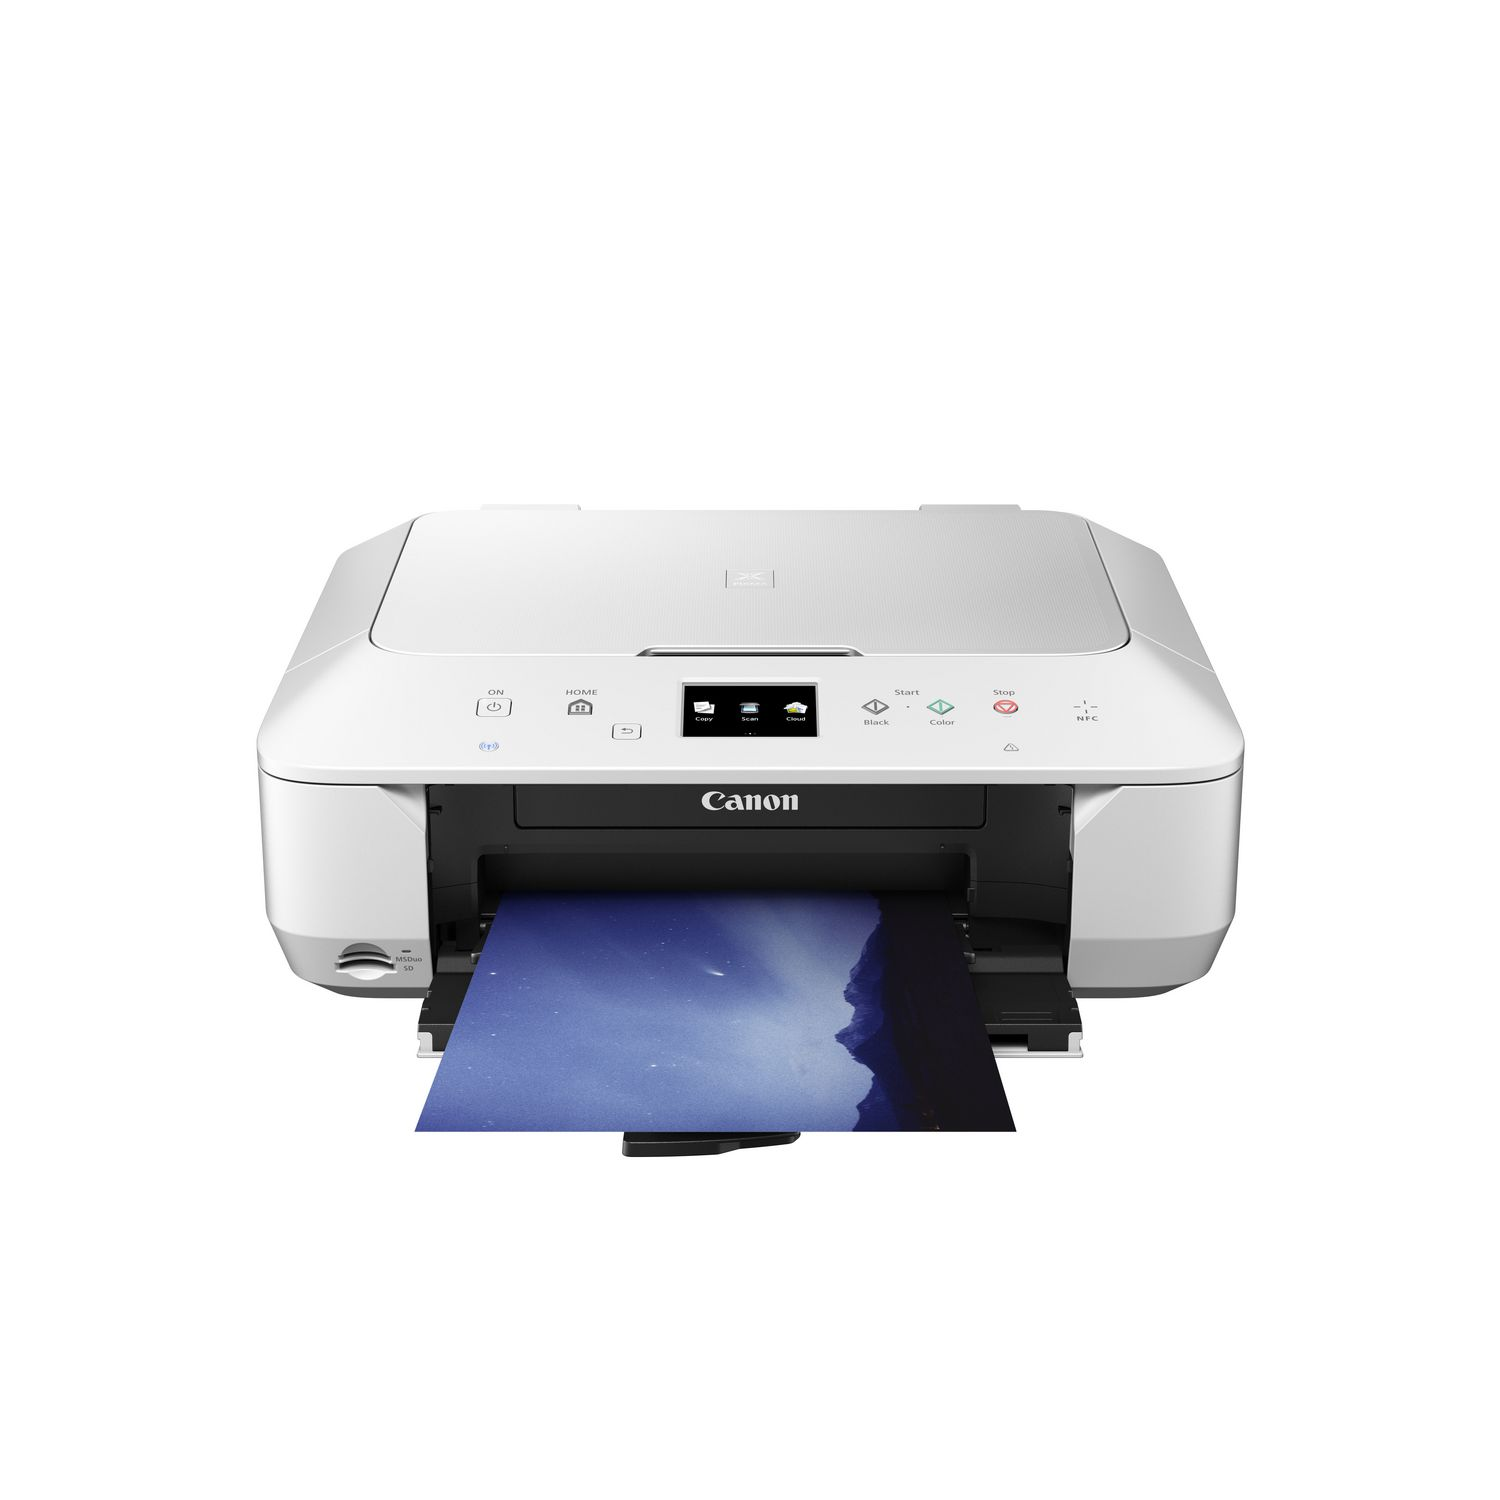 Canon Pixma Mg6620 Wireless Inkjet Photo All In One Printer White